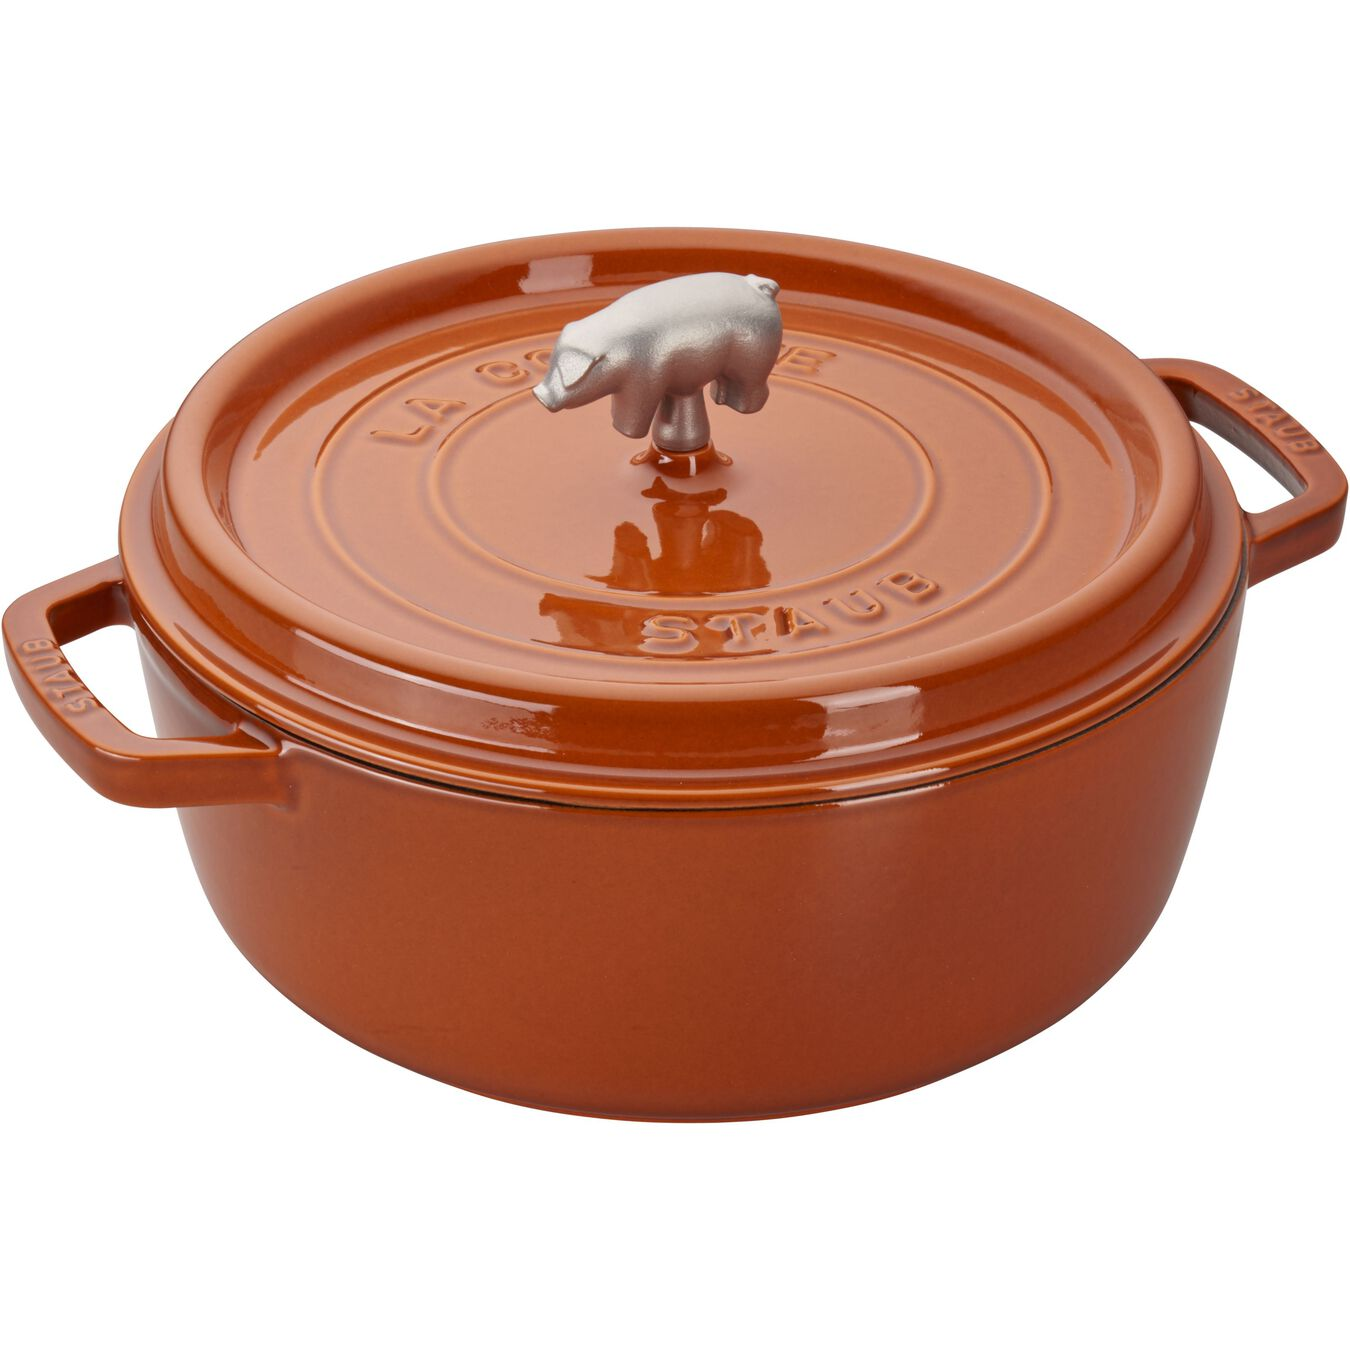 6-qt Cochon Shallow Wide Round Cocotte - Burnt Orange,,large 1